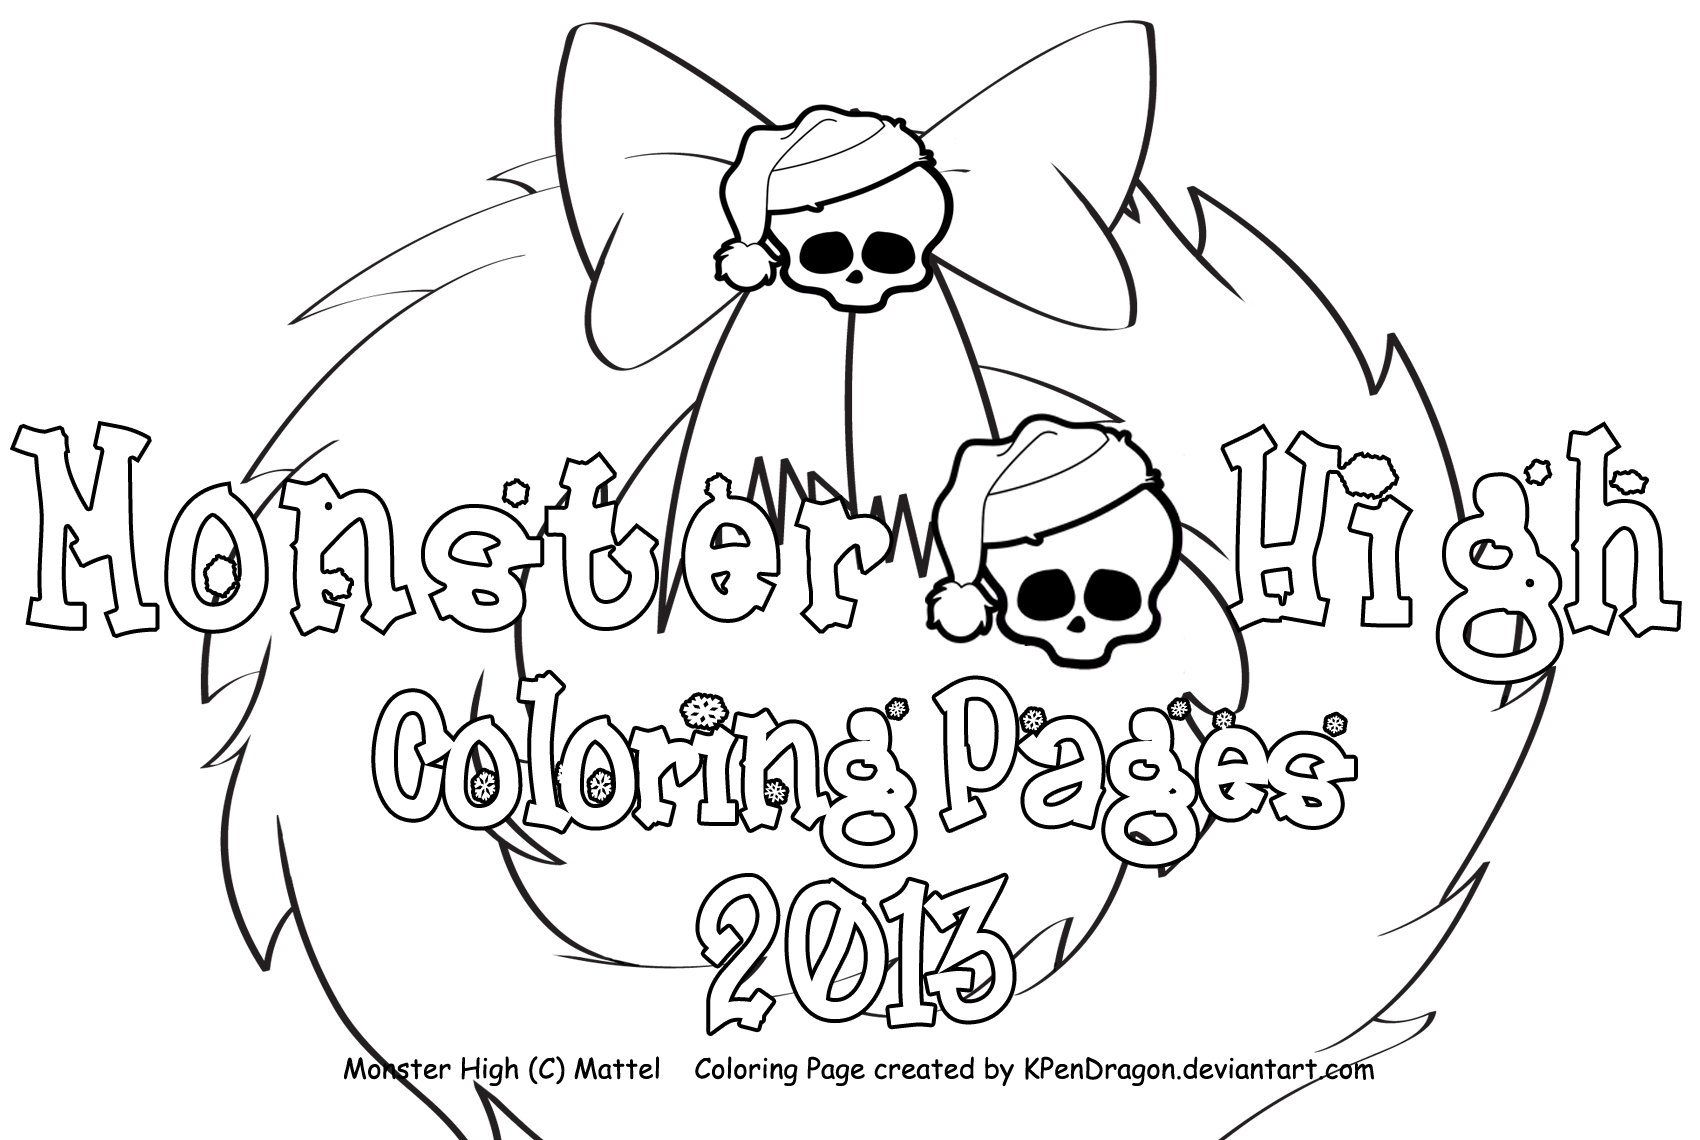 Holiday pages to color -  Mh Holiday Coloring Pages 2013 By Kpendragon